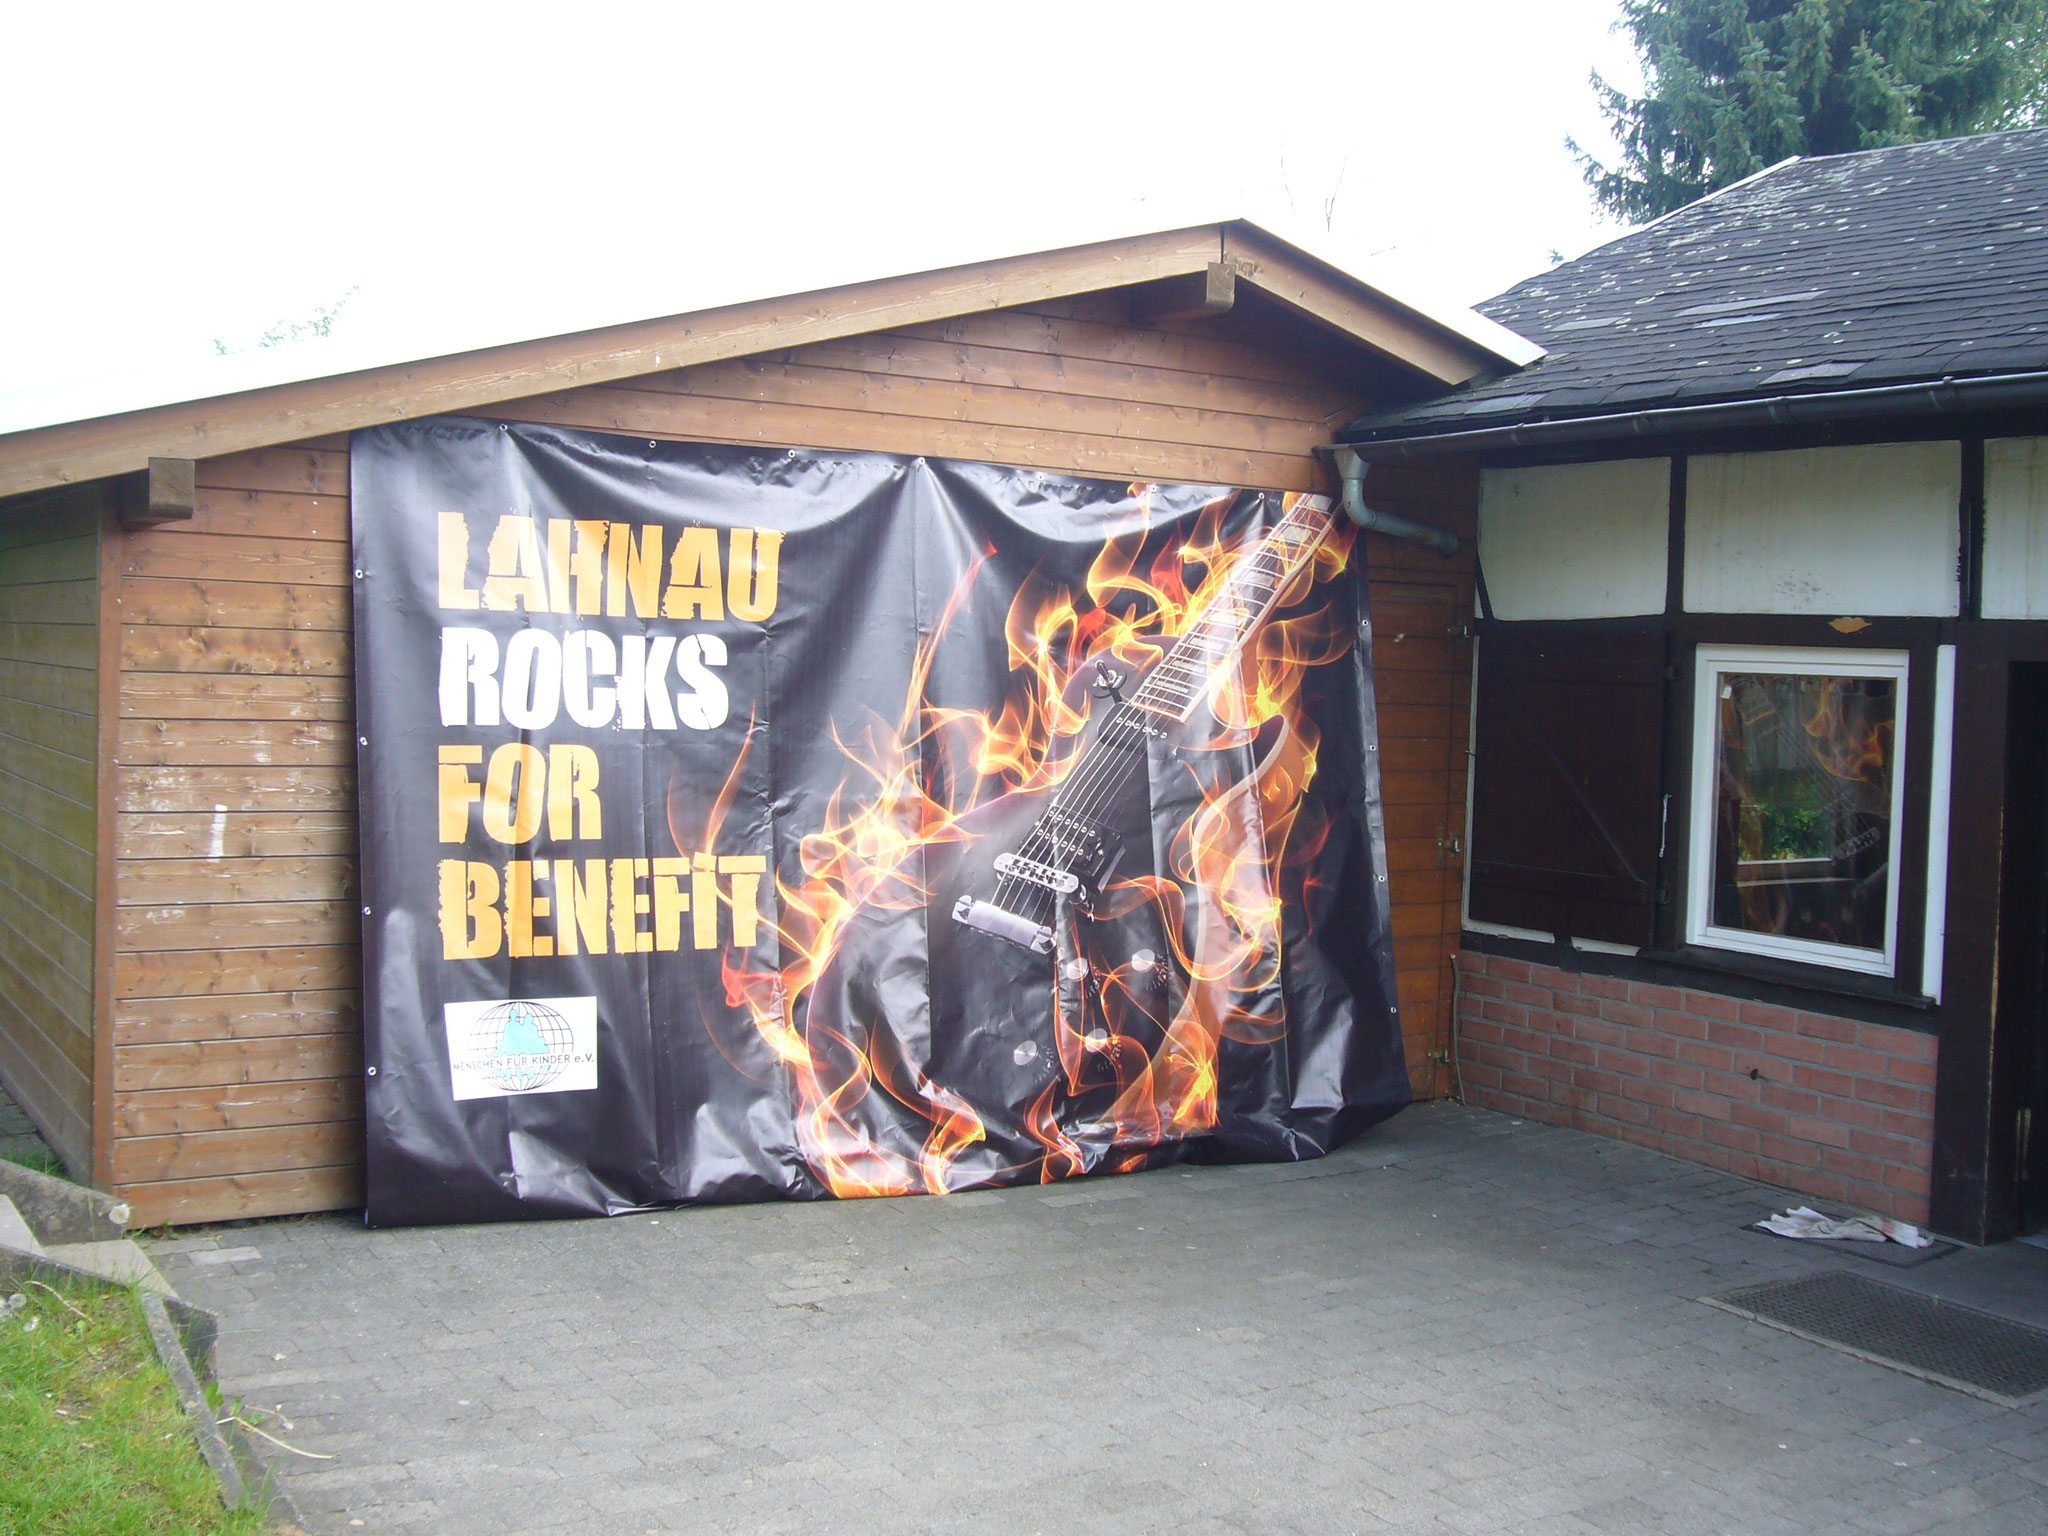 Lahnau rocks for Benefit